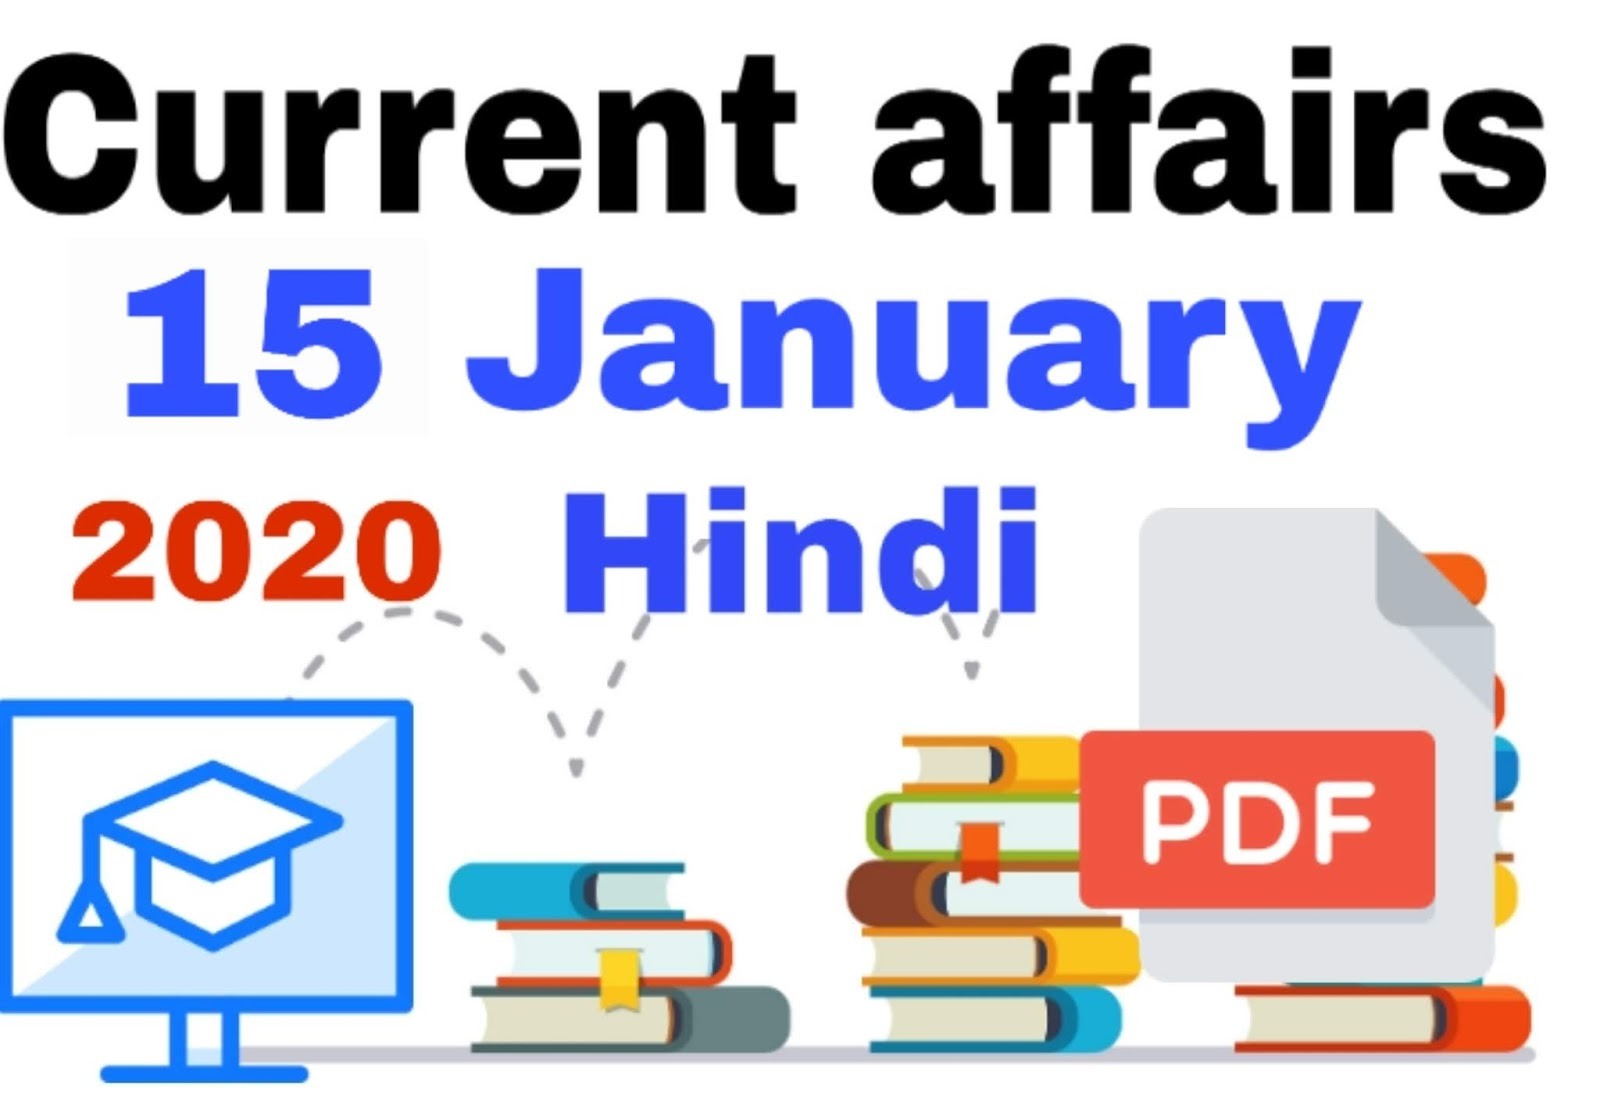 Daily GK Update 15 January 2020: Read Daily GK Update In Hindi